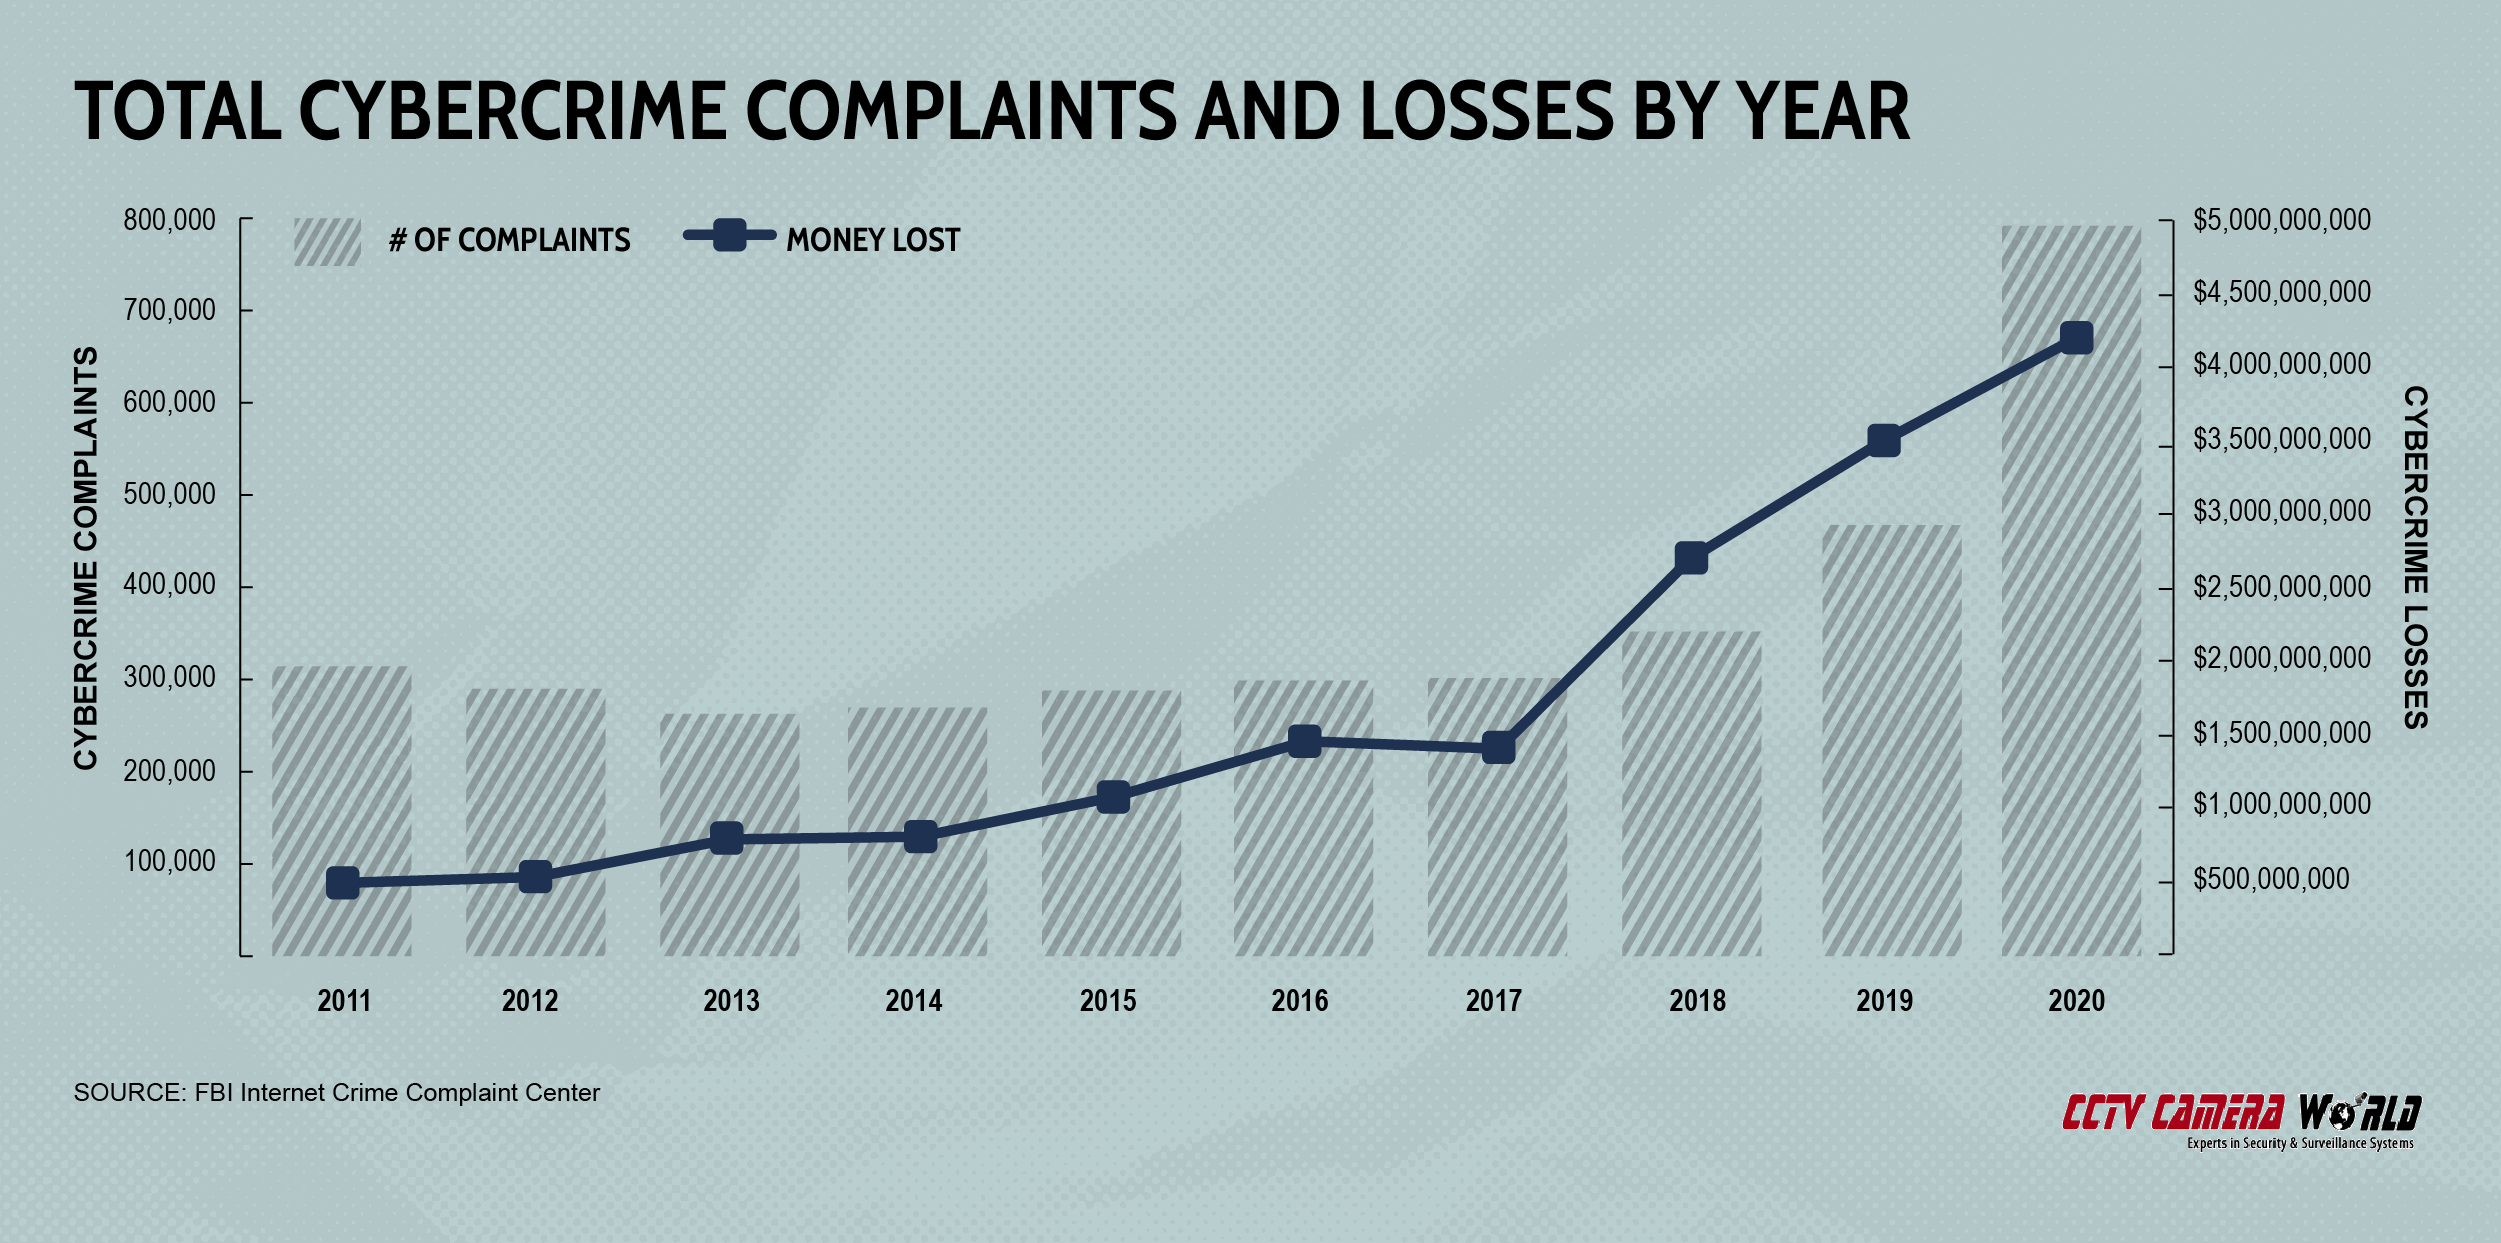 Total cybercrime complaints and losses by year